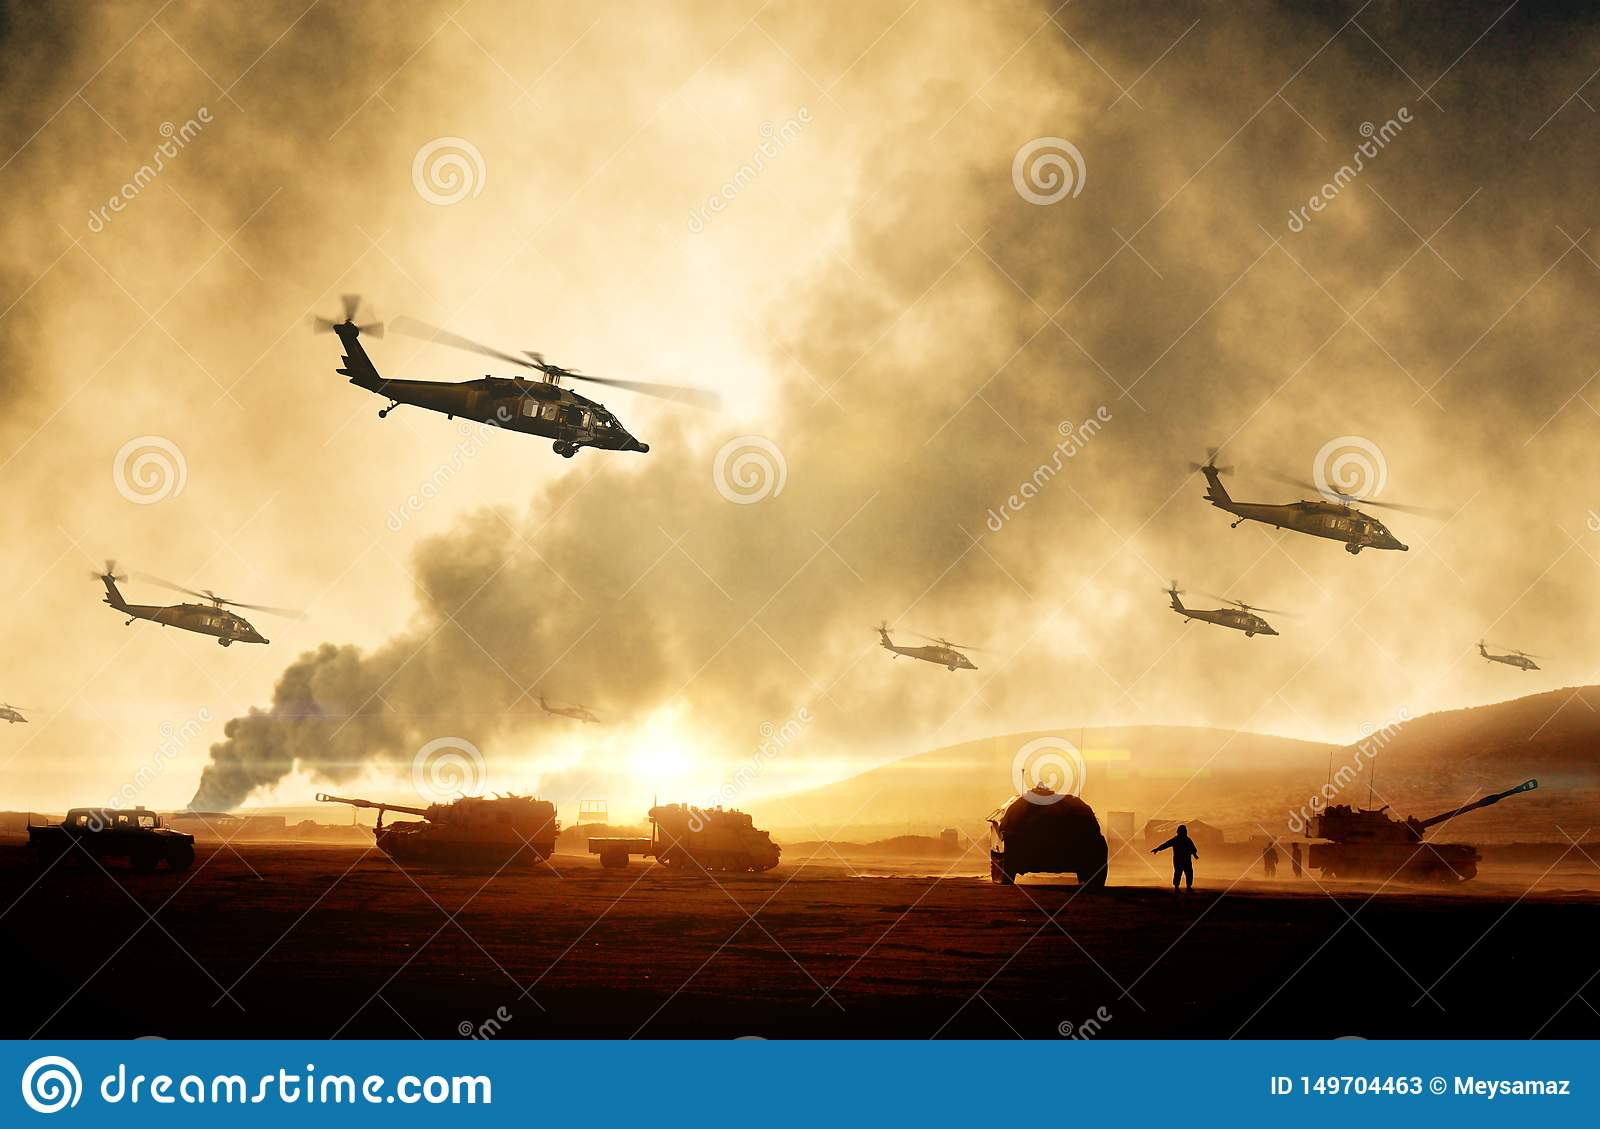 Military helicopters, forces and tanks in plane in war